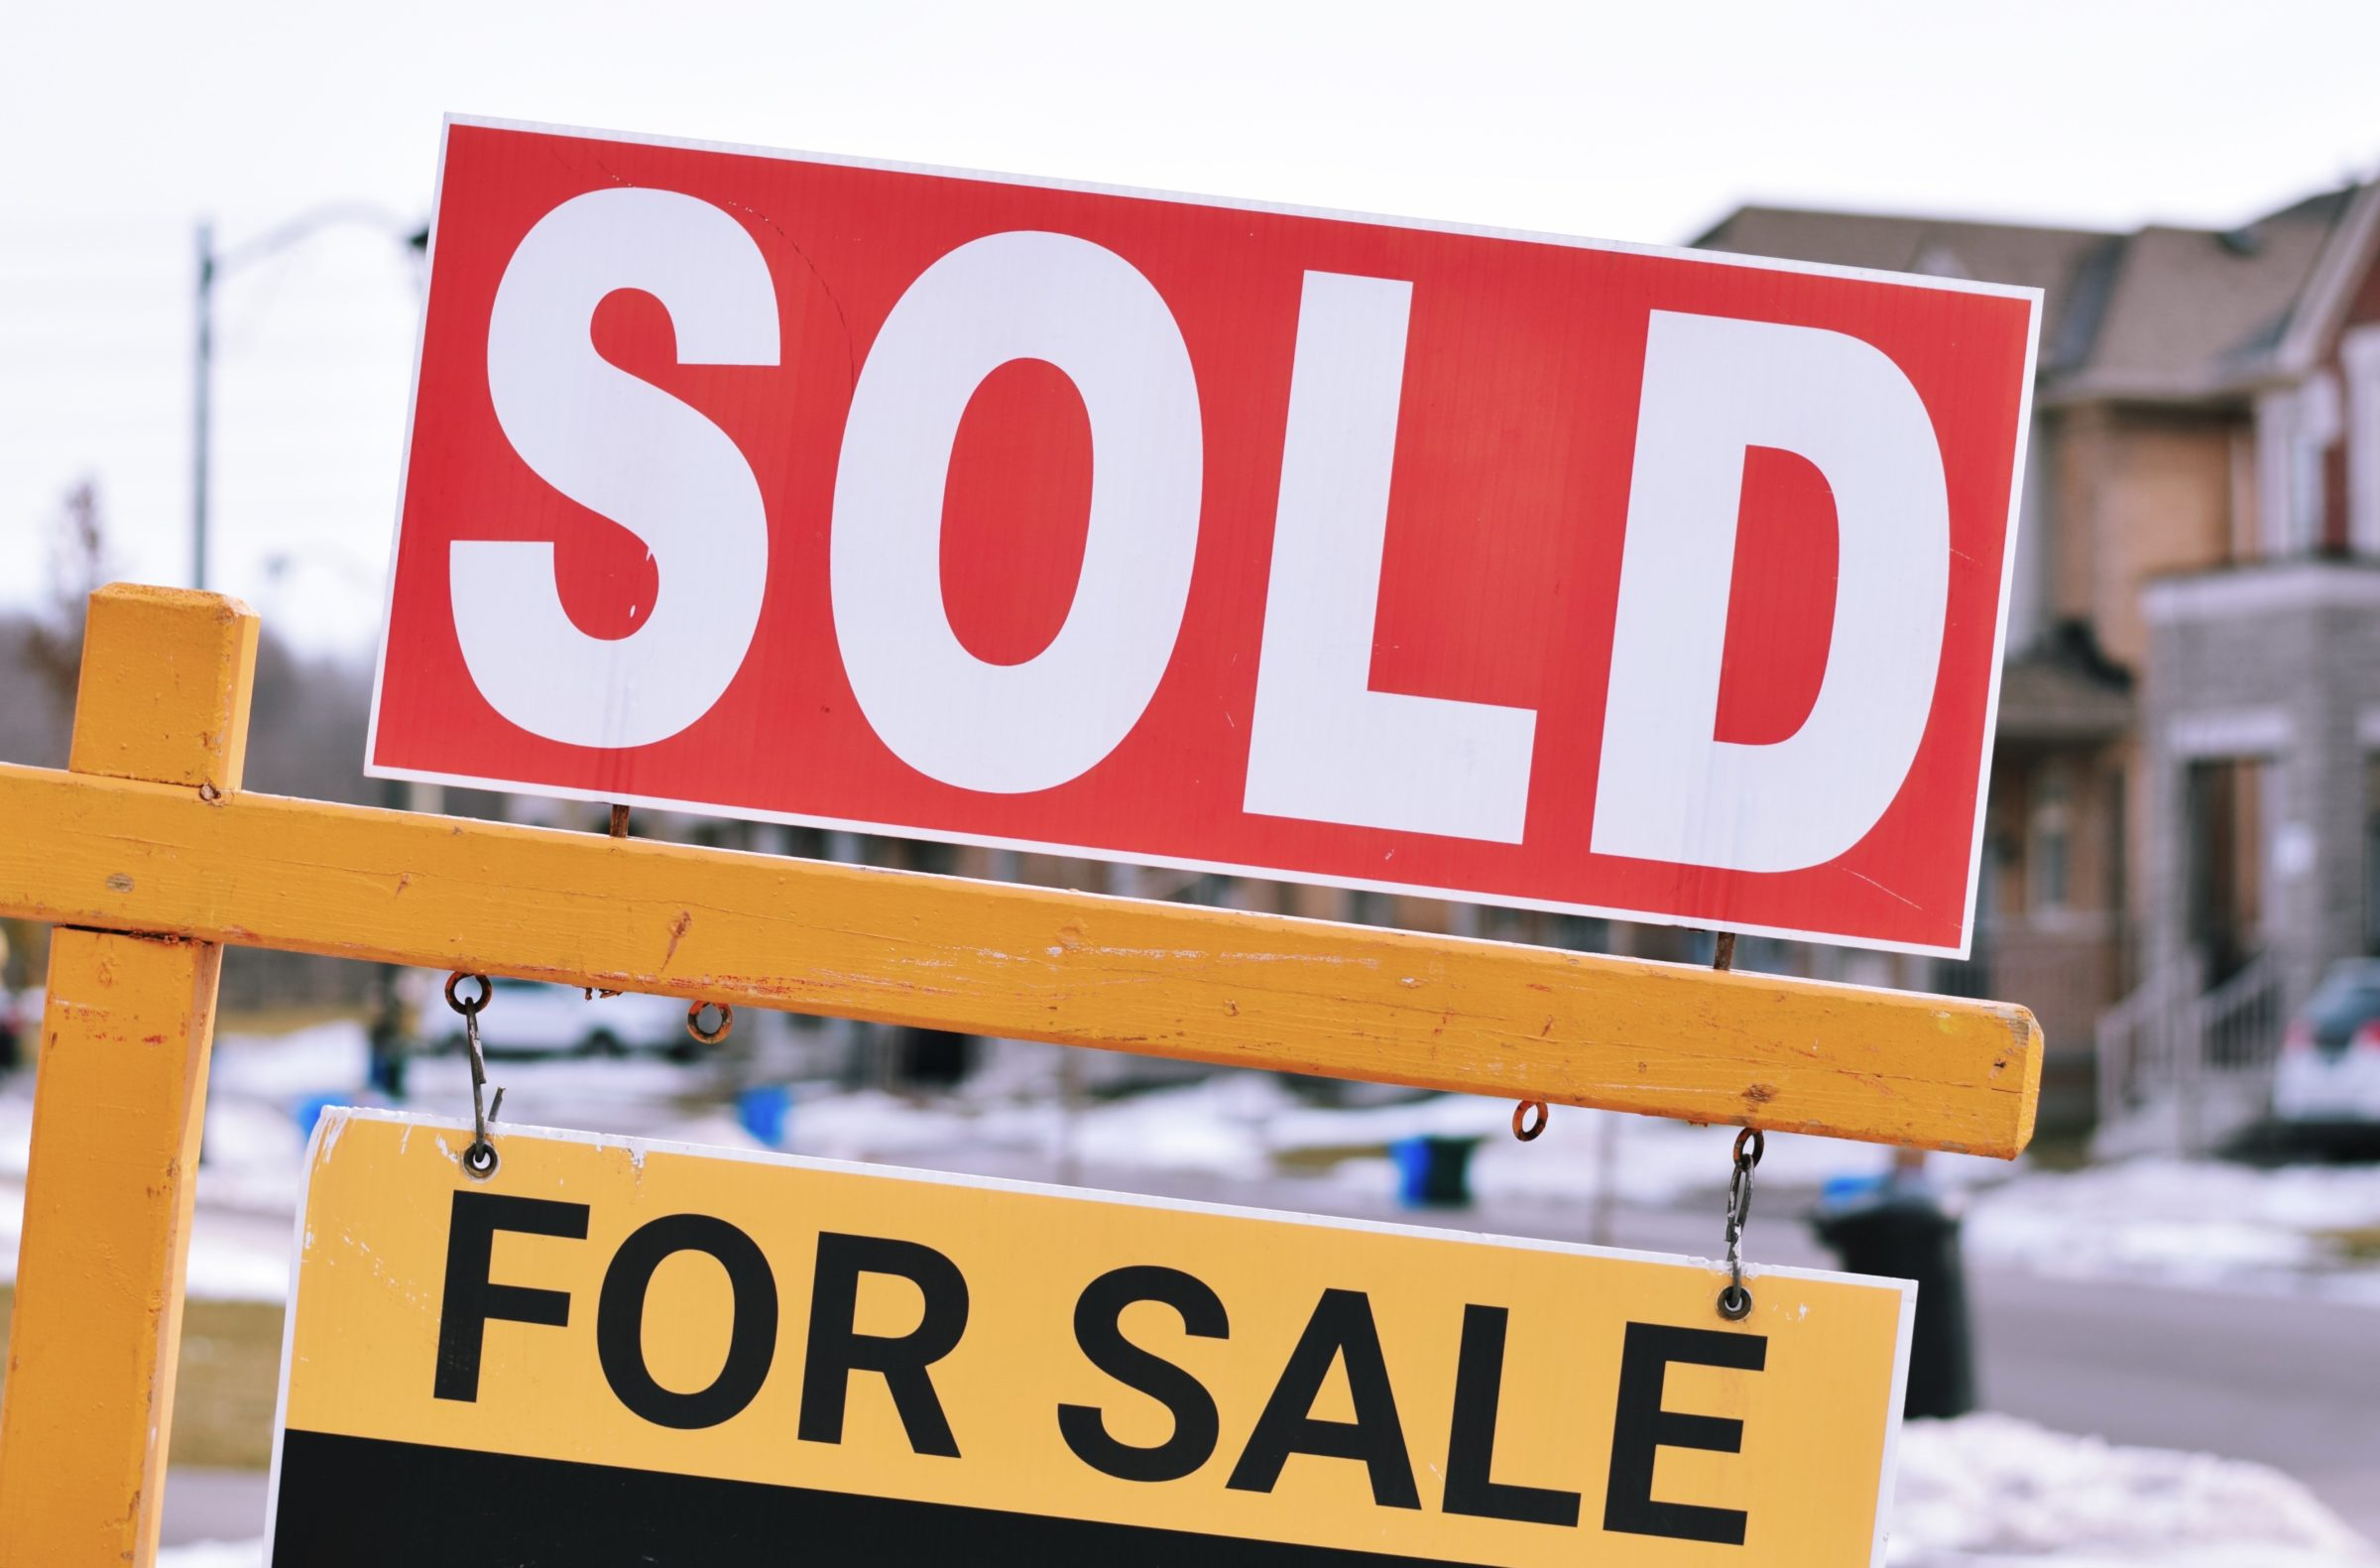 sold property for sale sign 88TBUGE